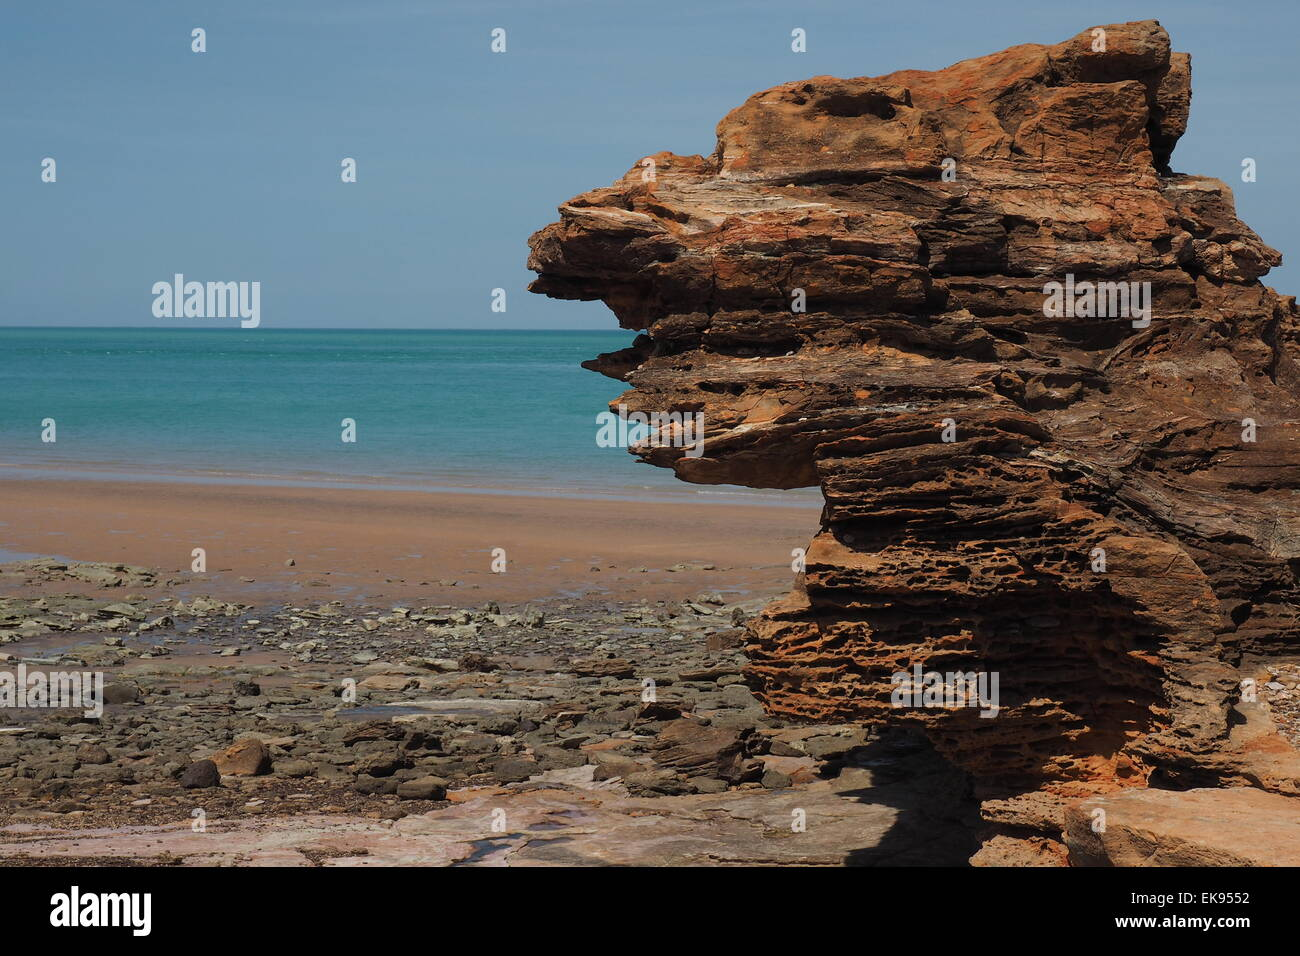 Pindan Red Rocks et plage près de port de Broome, Australie occidentale. Banque D'Images